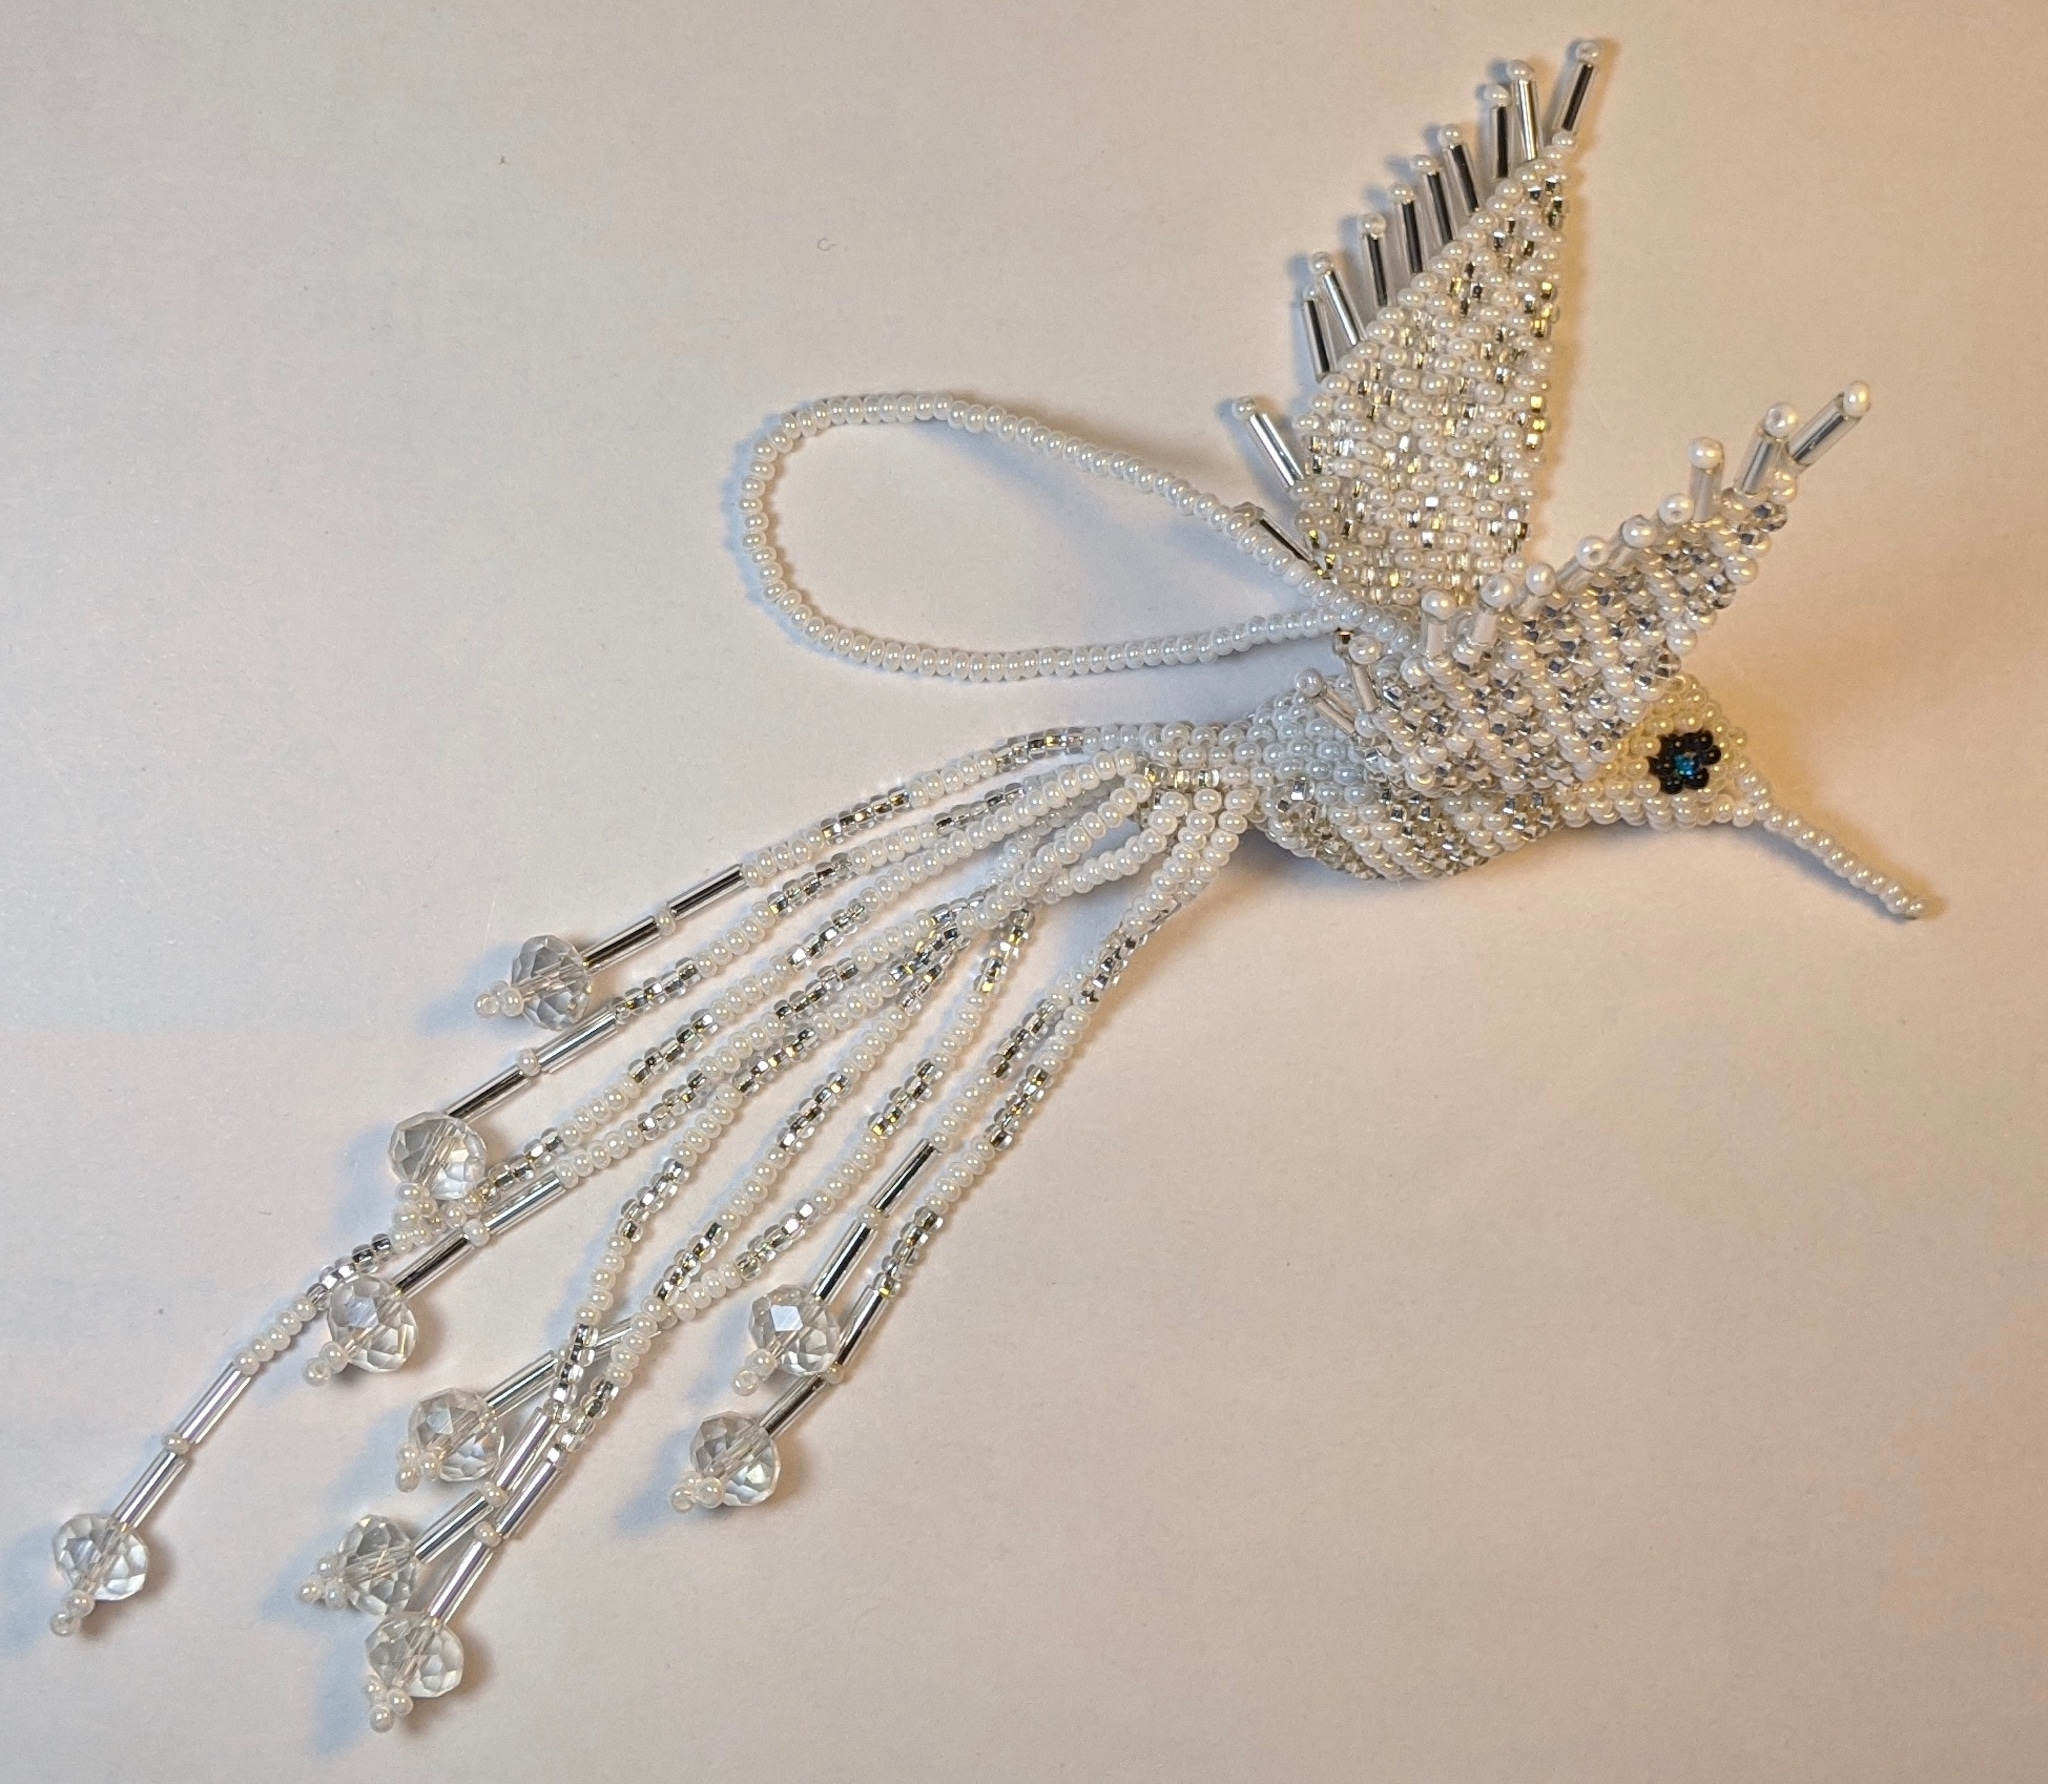 Hummingbird Beaded Ornament - Silver White and Opaque White